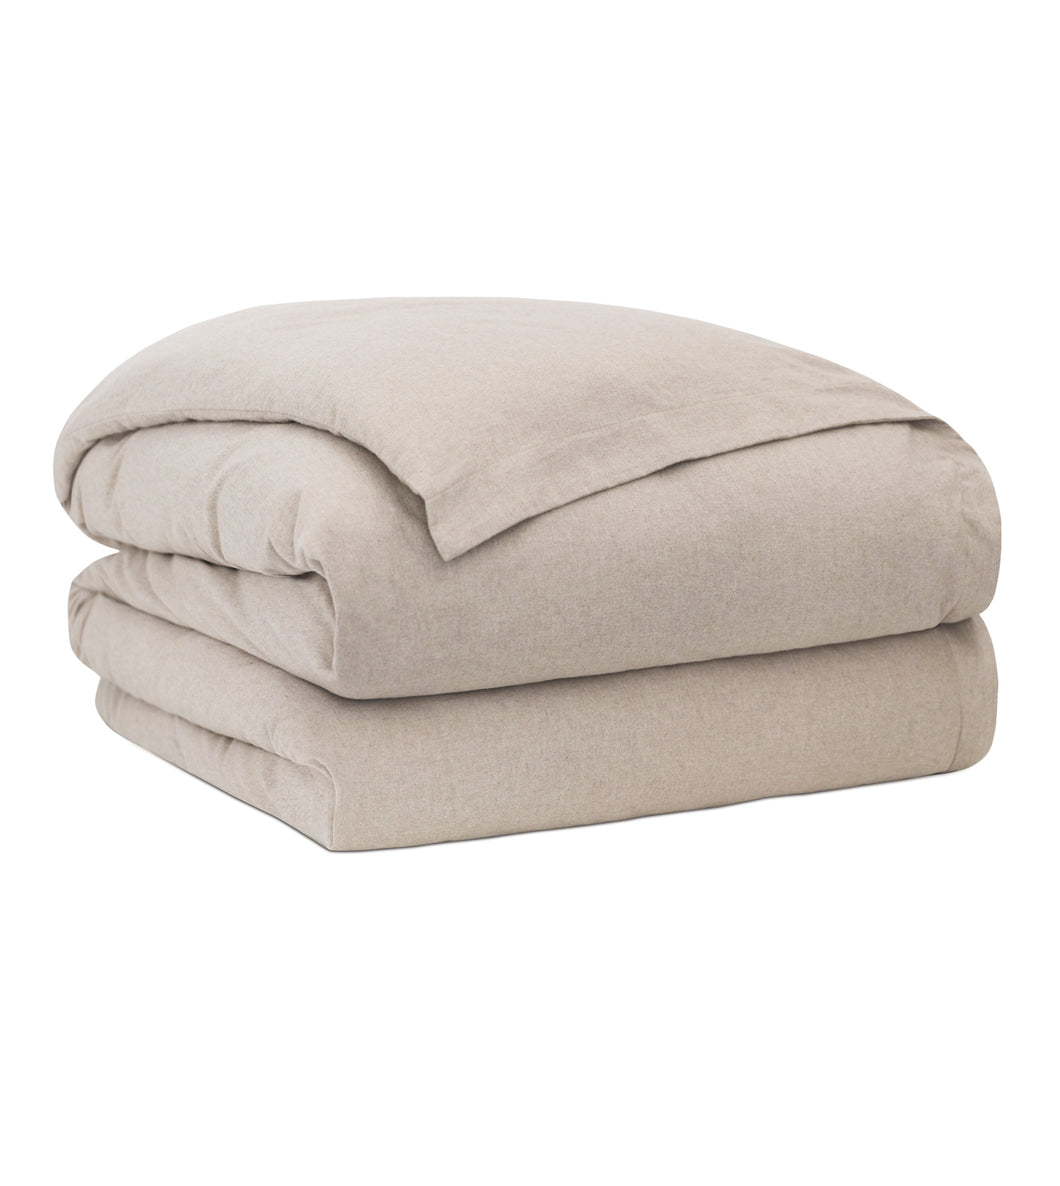 Landon Sand  Solid 100% Cotton Duvet Cover